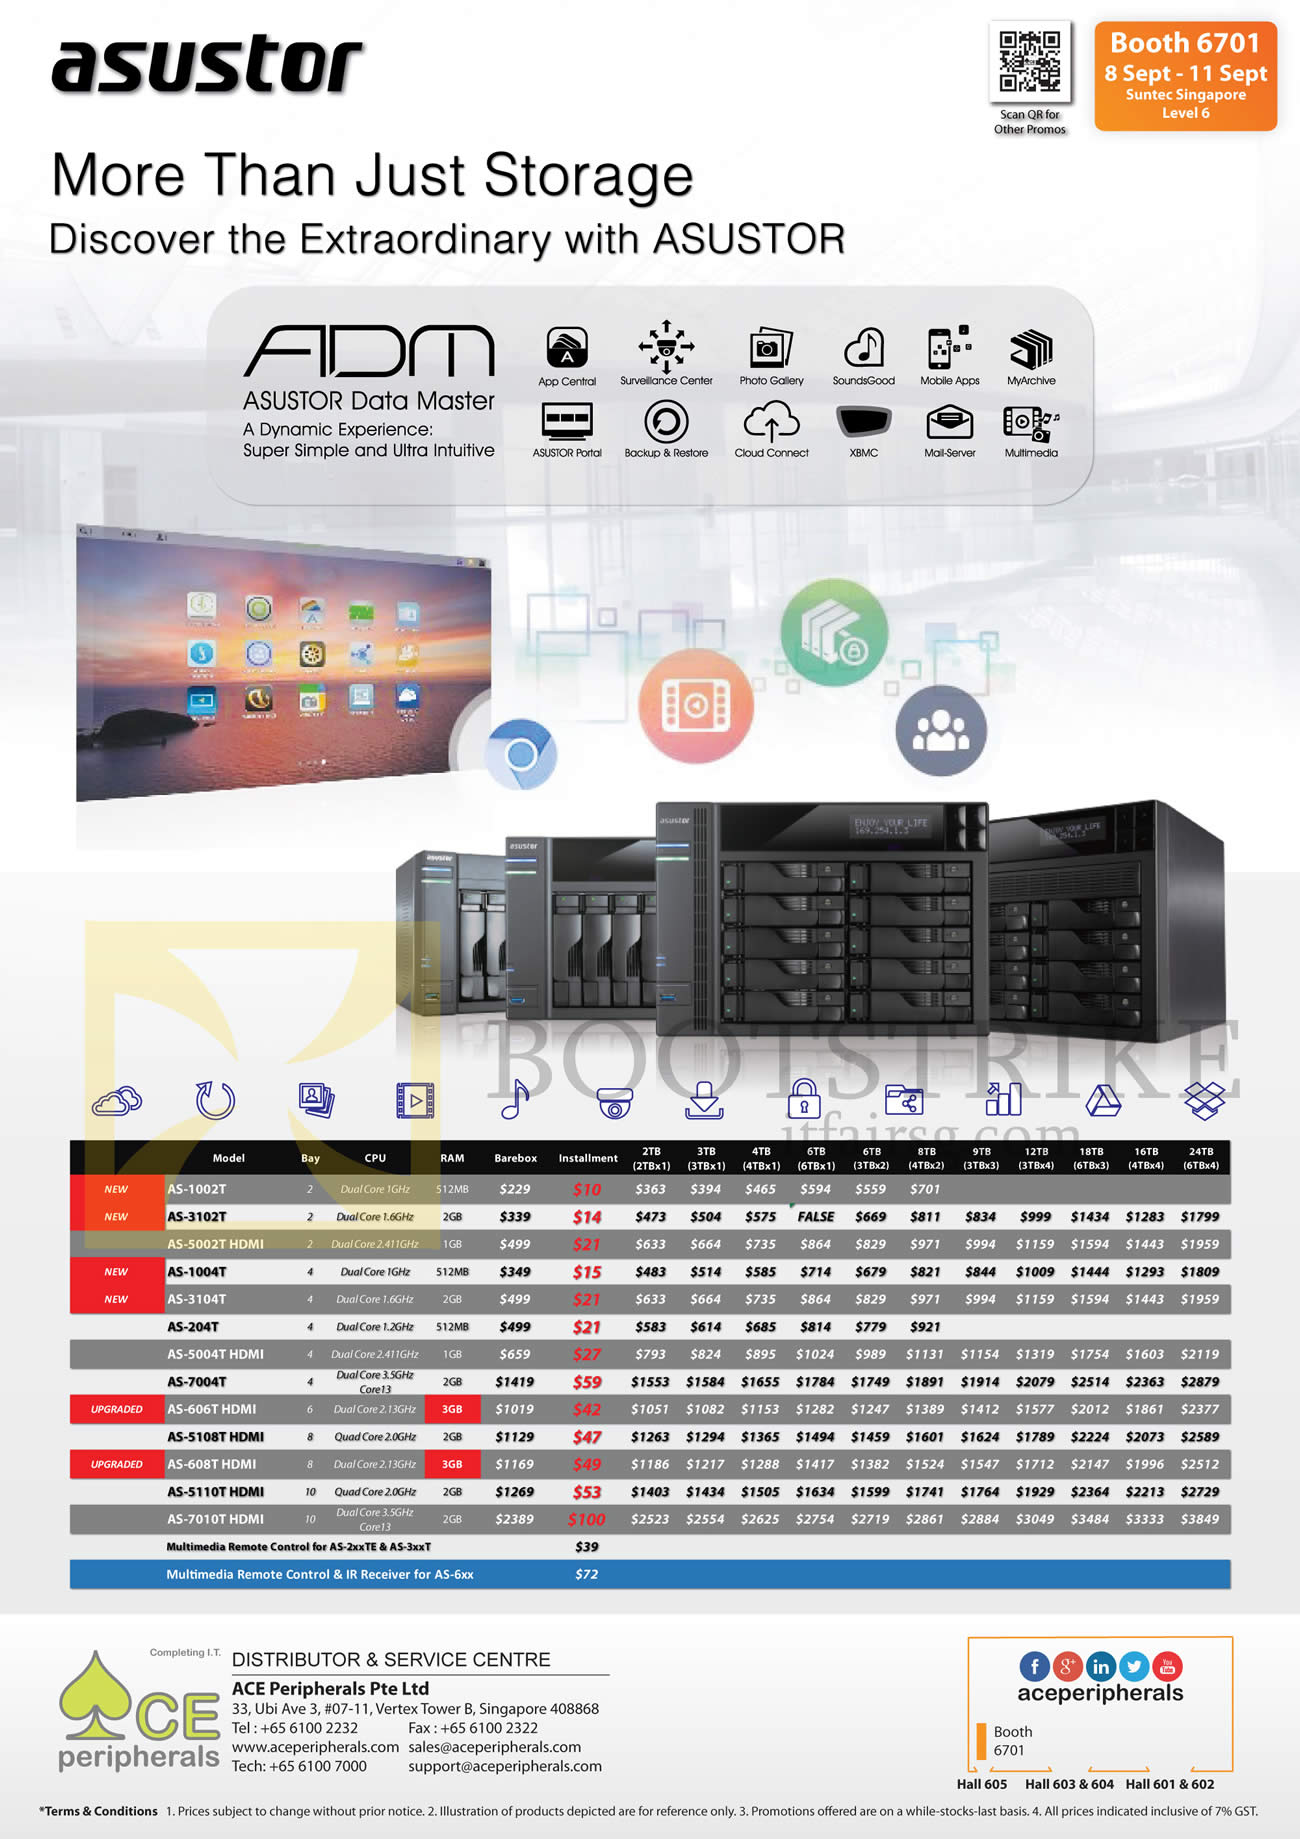 COMEX 2016 price list image brochure of Ace Peripherals NAS Asustor Data Master AS-1002T, 3102T, 5002, 1004T, 3104T, 204T, 5004T, 7004T, 606T, 5108T, 608T, 5110T, 7010T HDMI